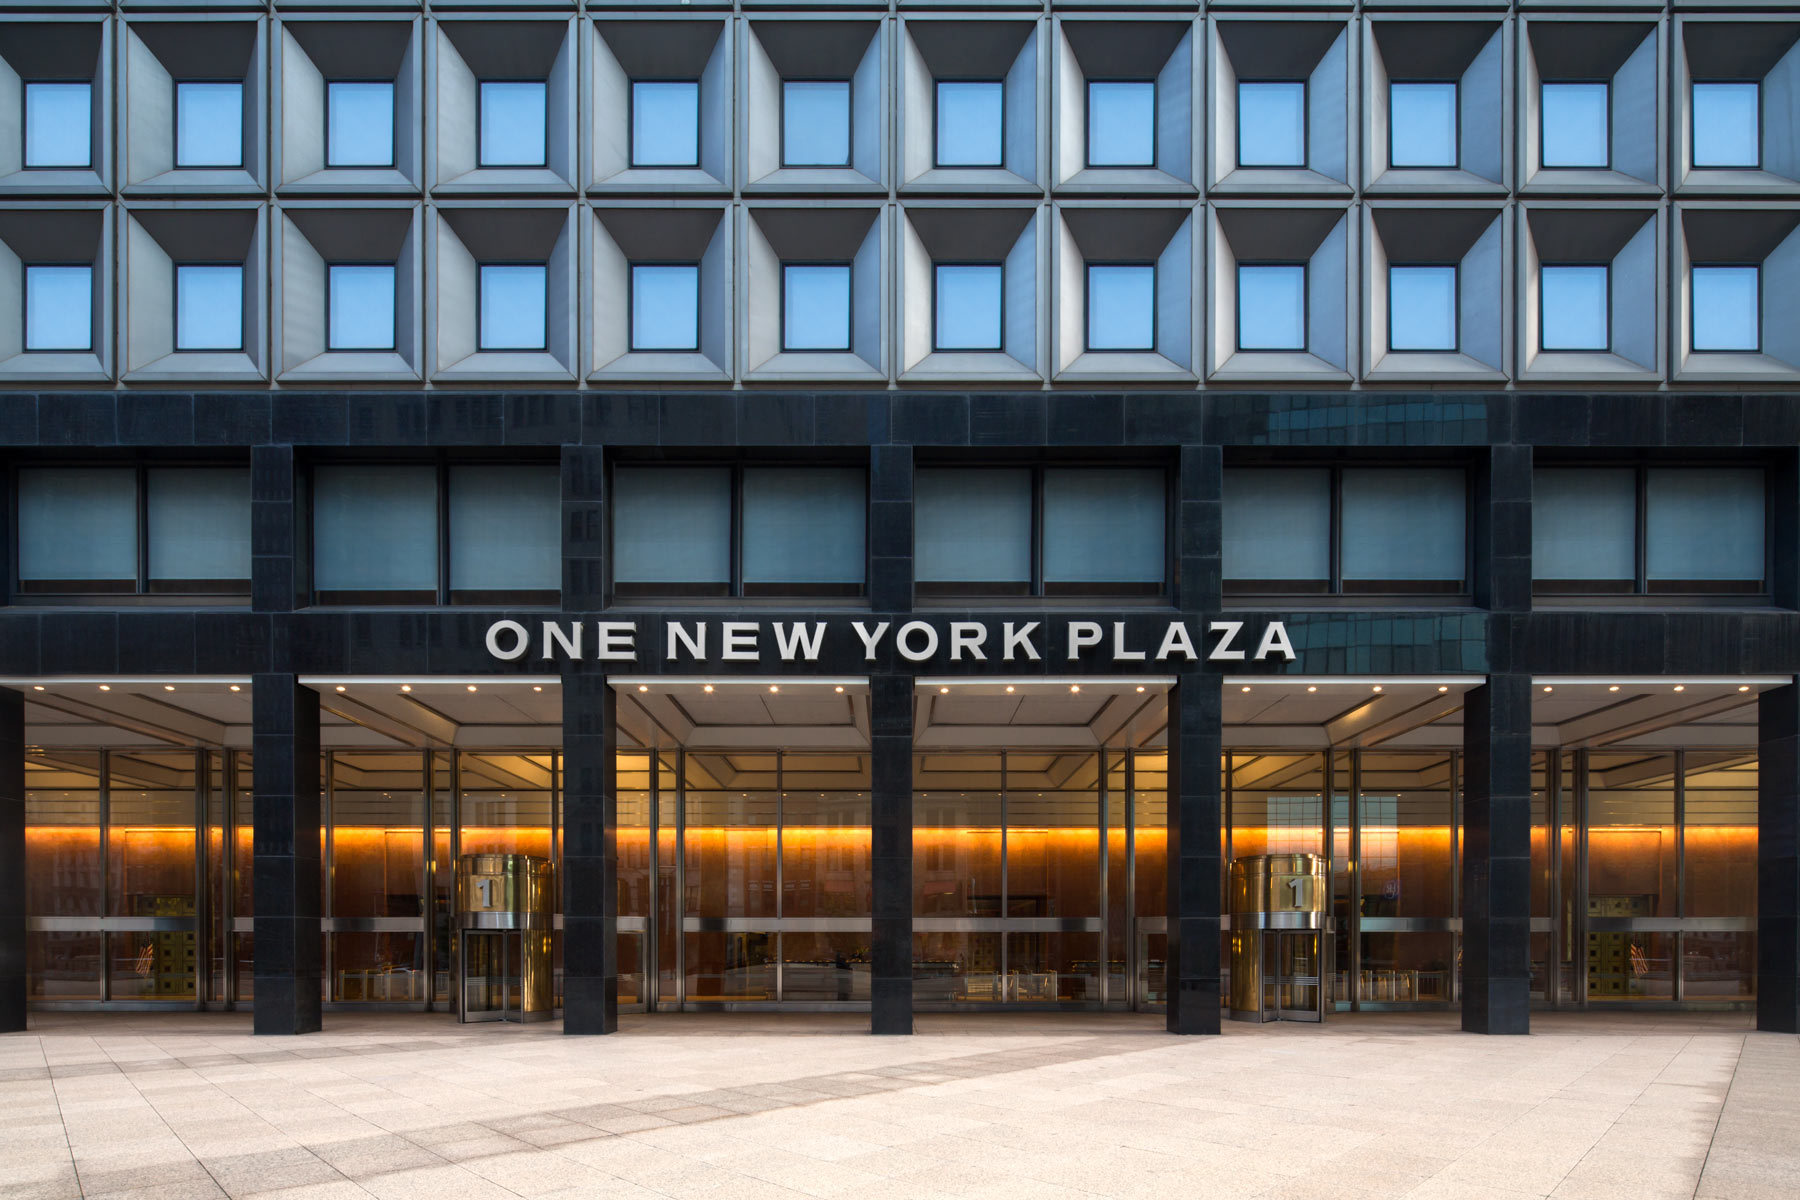 5_1one_new_york_plaza_day_brookfield.jpg